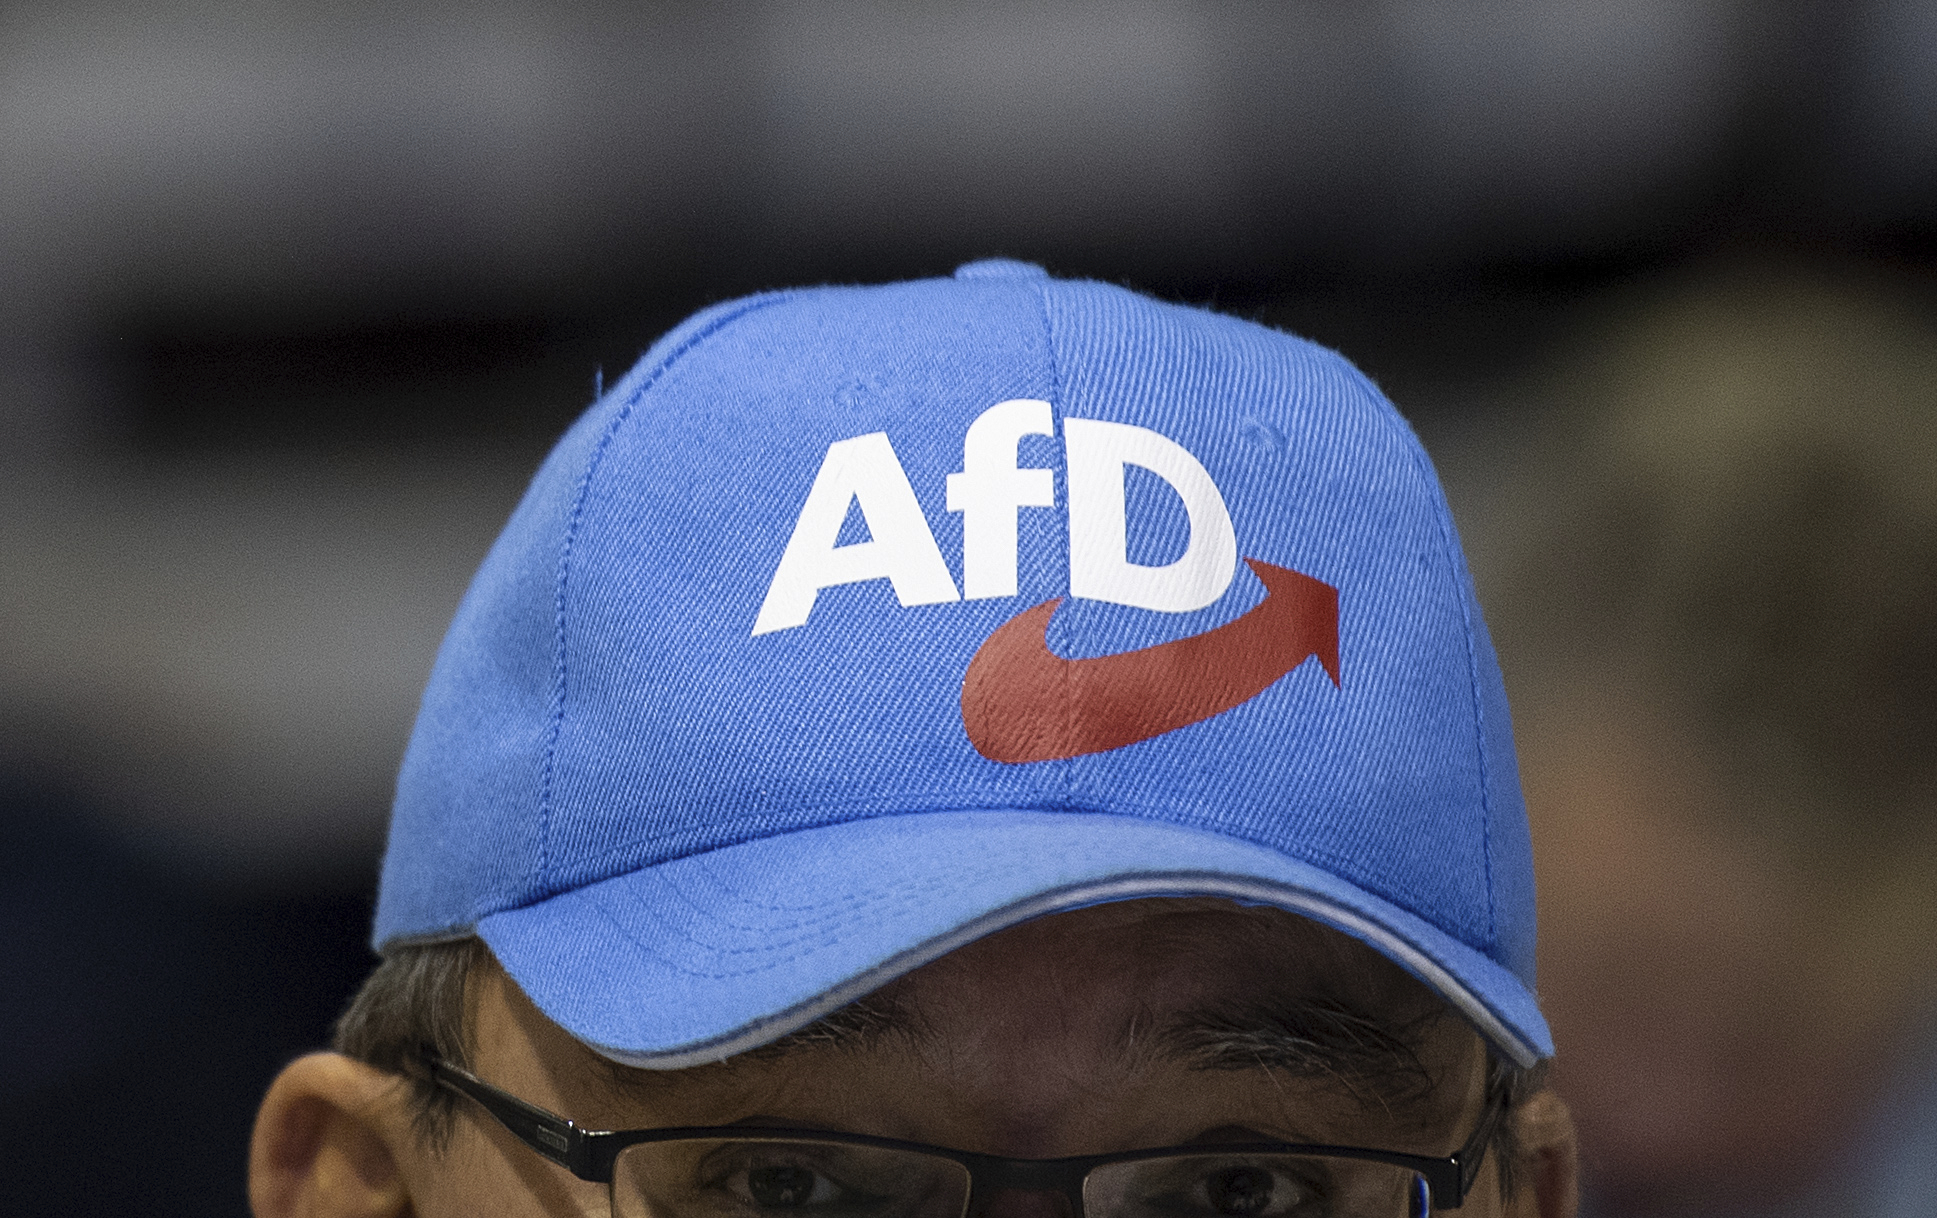 German domestic intelligence service considers nationwide surveillance of AfD